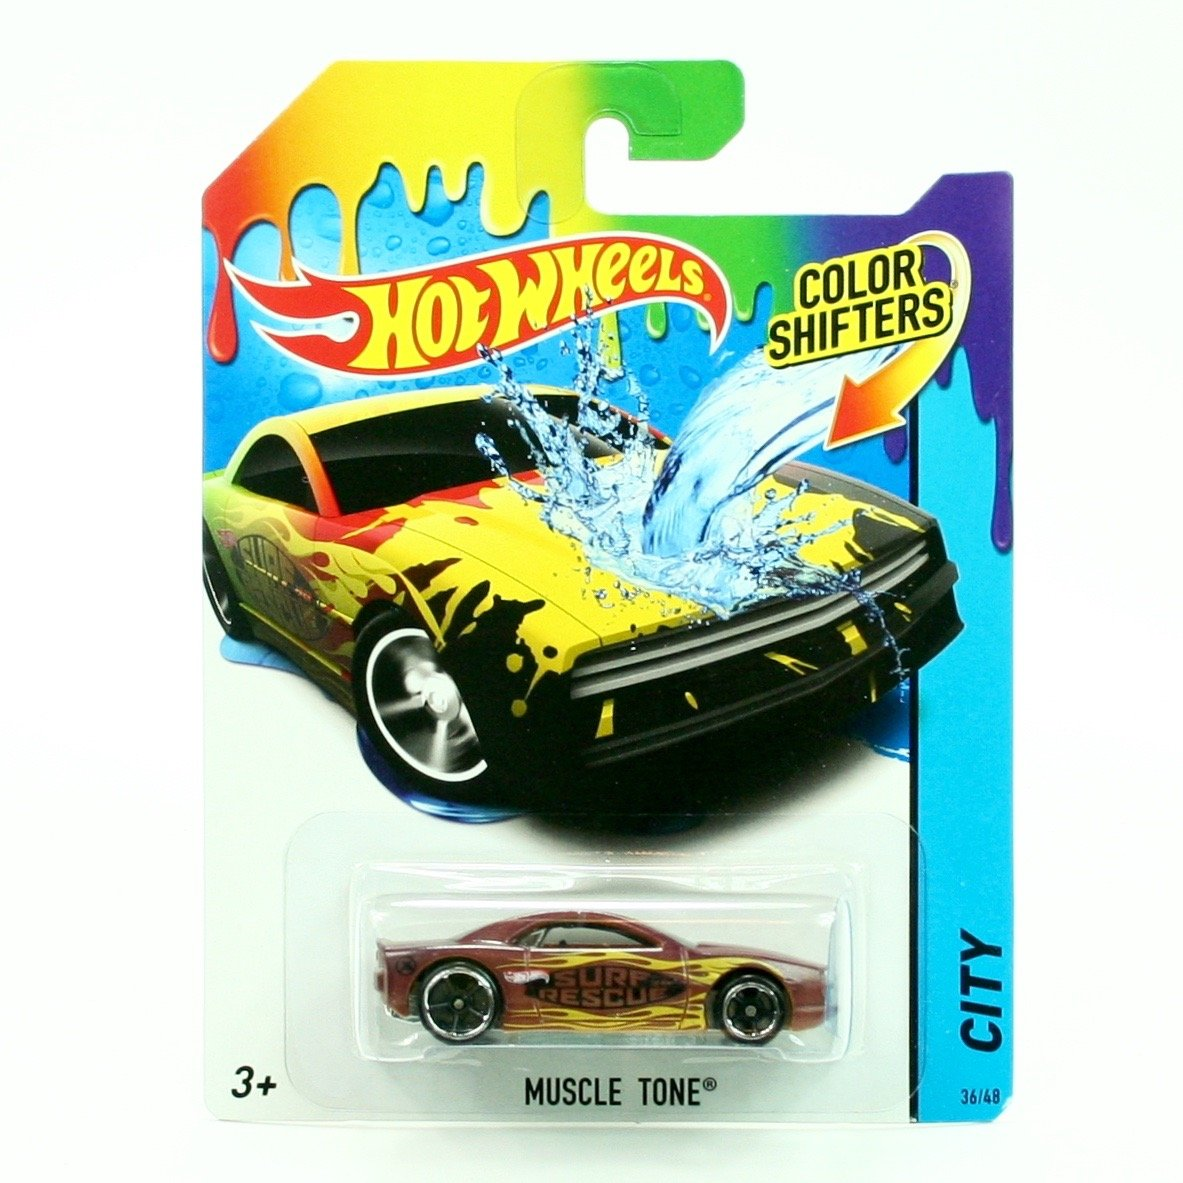 Hot Wheels - 2014 Color Shifters - City 36/48 - Muscle Tone